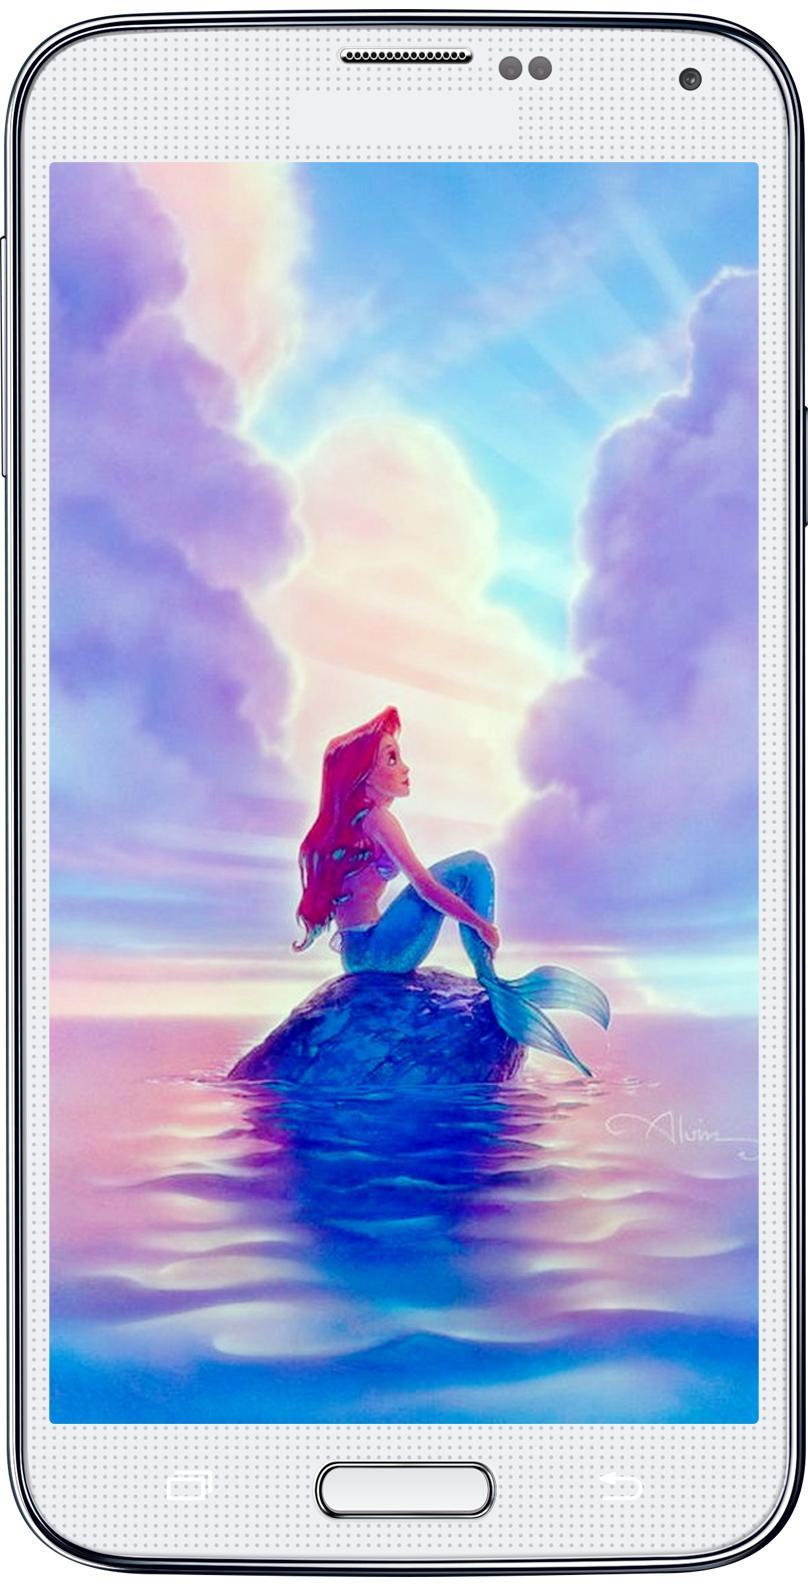 Hd Ariel Little Mermaid Wallpapers For Android Apk Download